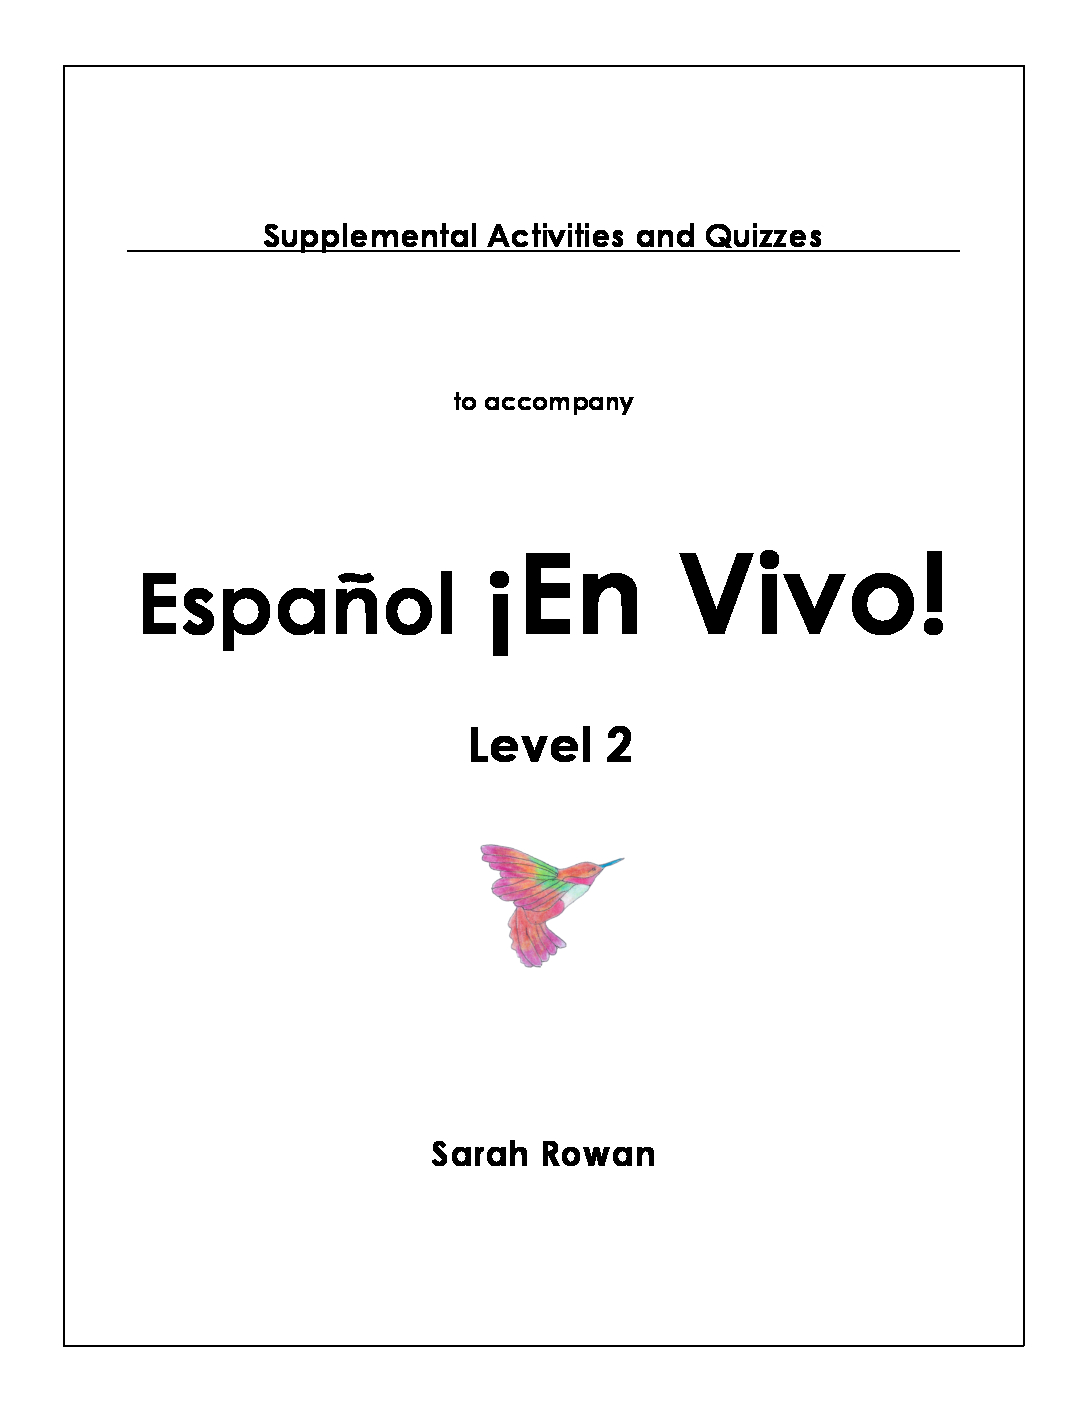 Supplemental Activities And Quizzes For Espanol En Vivo